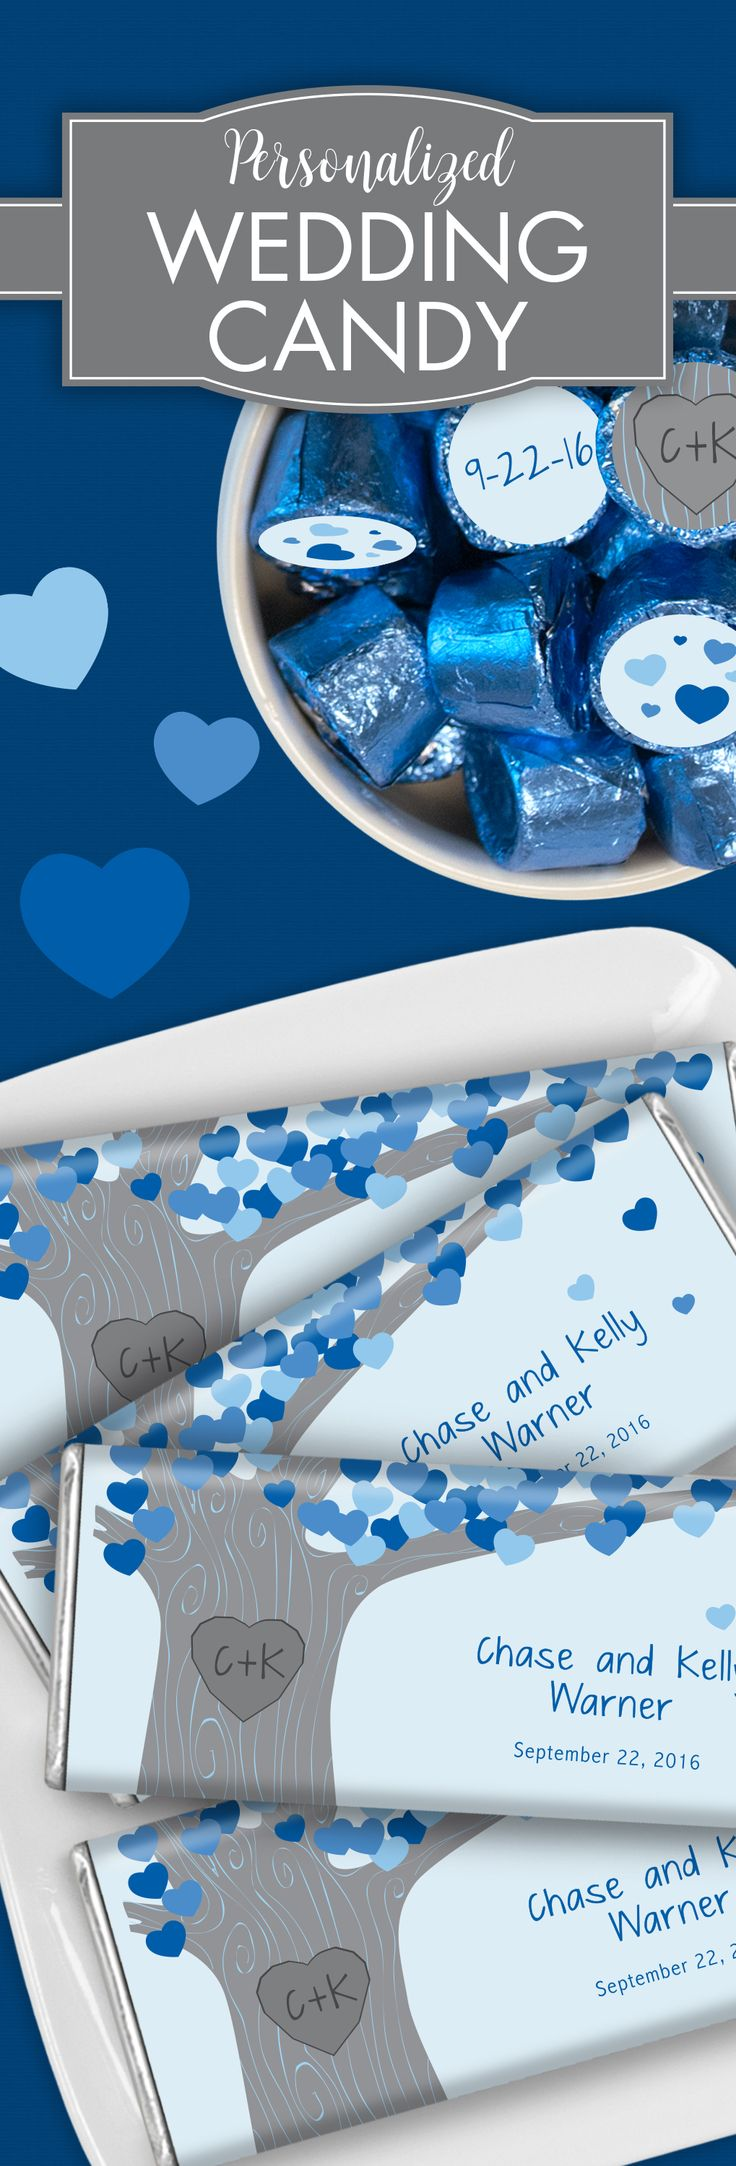 """Family and friends will know how deeply rooted your love is with this """"Tree of Love"""" themed candy bar wrapper in cobalt blue. How amazing would this be as a table place setting element, or simply a sweet way to thank your guests for sharing in your beautiful day."""